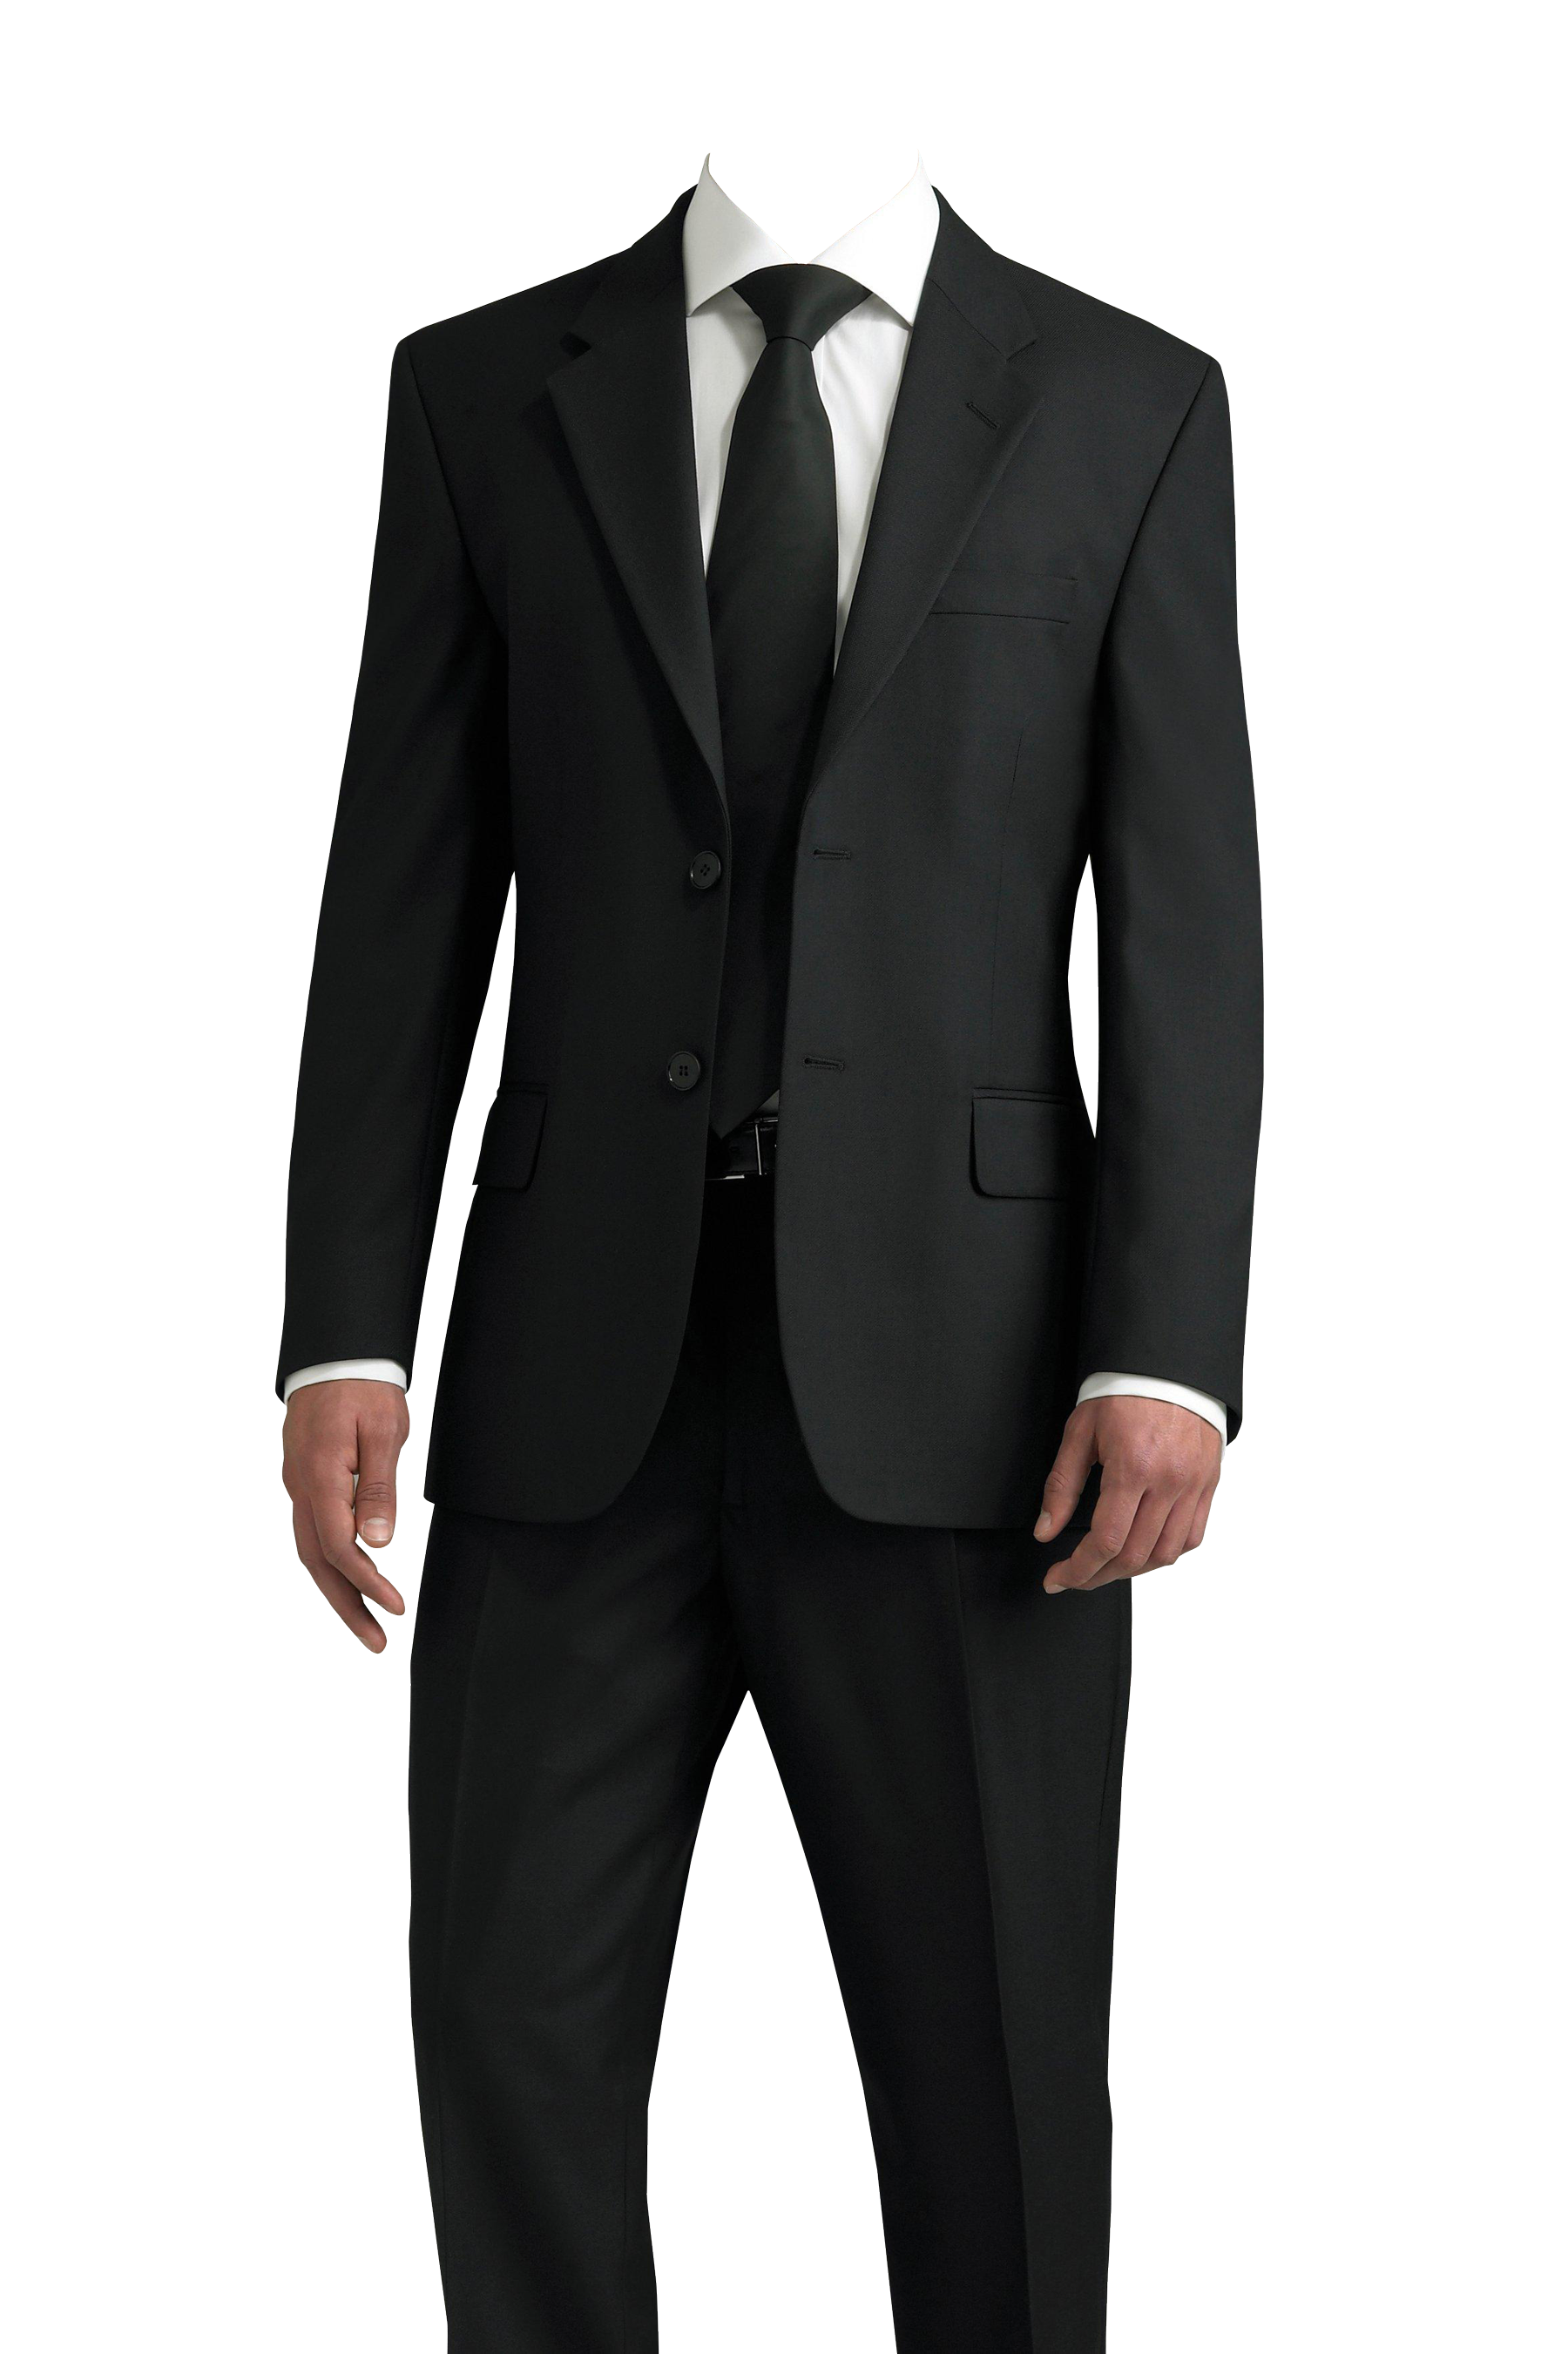 Hd Png For Men - Hd Png Men Suit Background Transparent #37953 - Free Icons and PNG ...